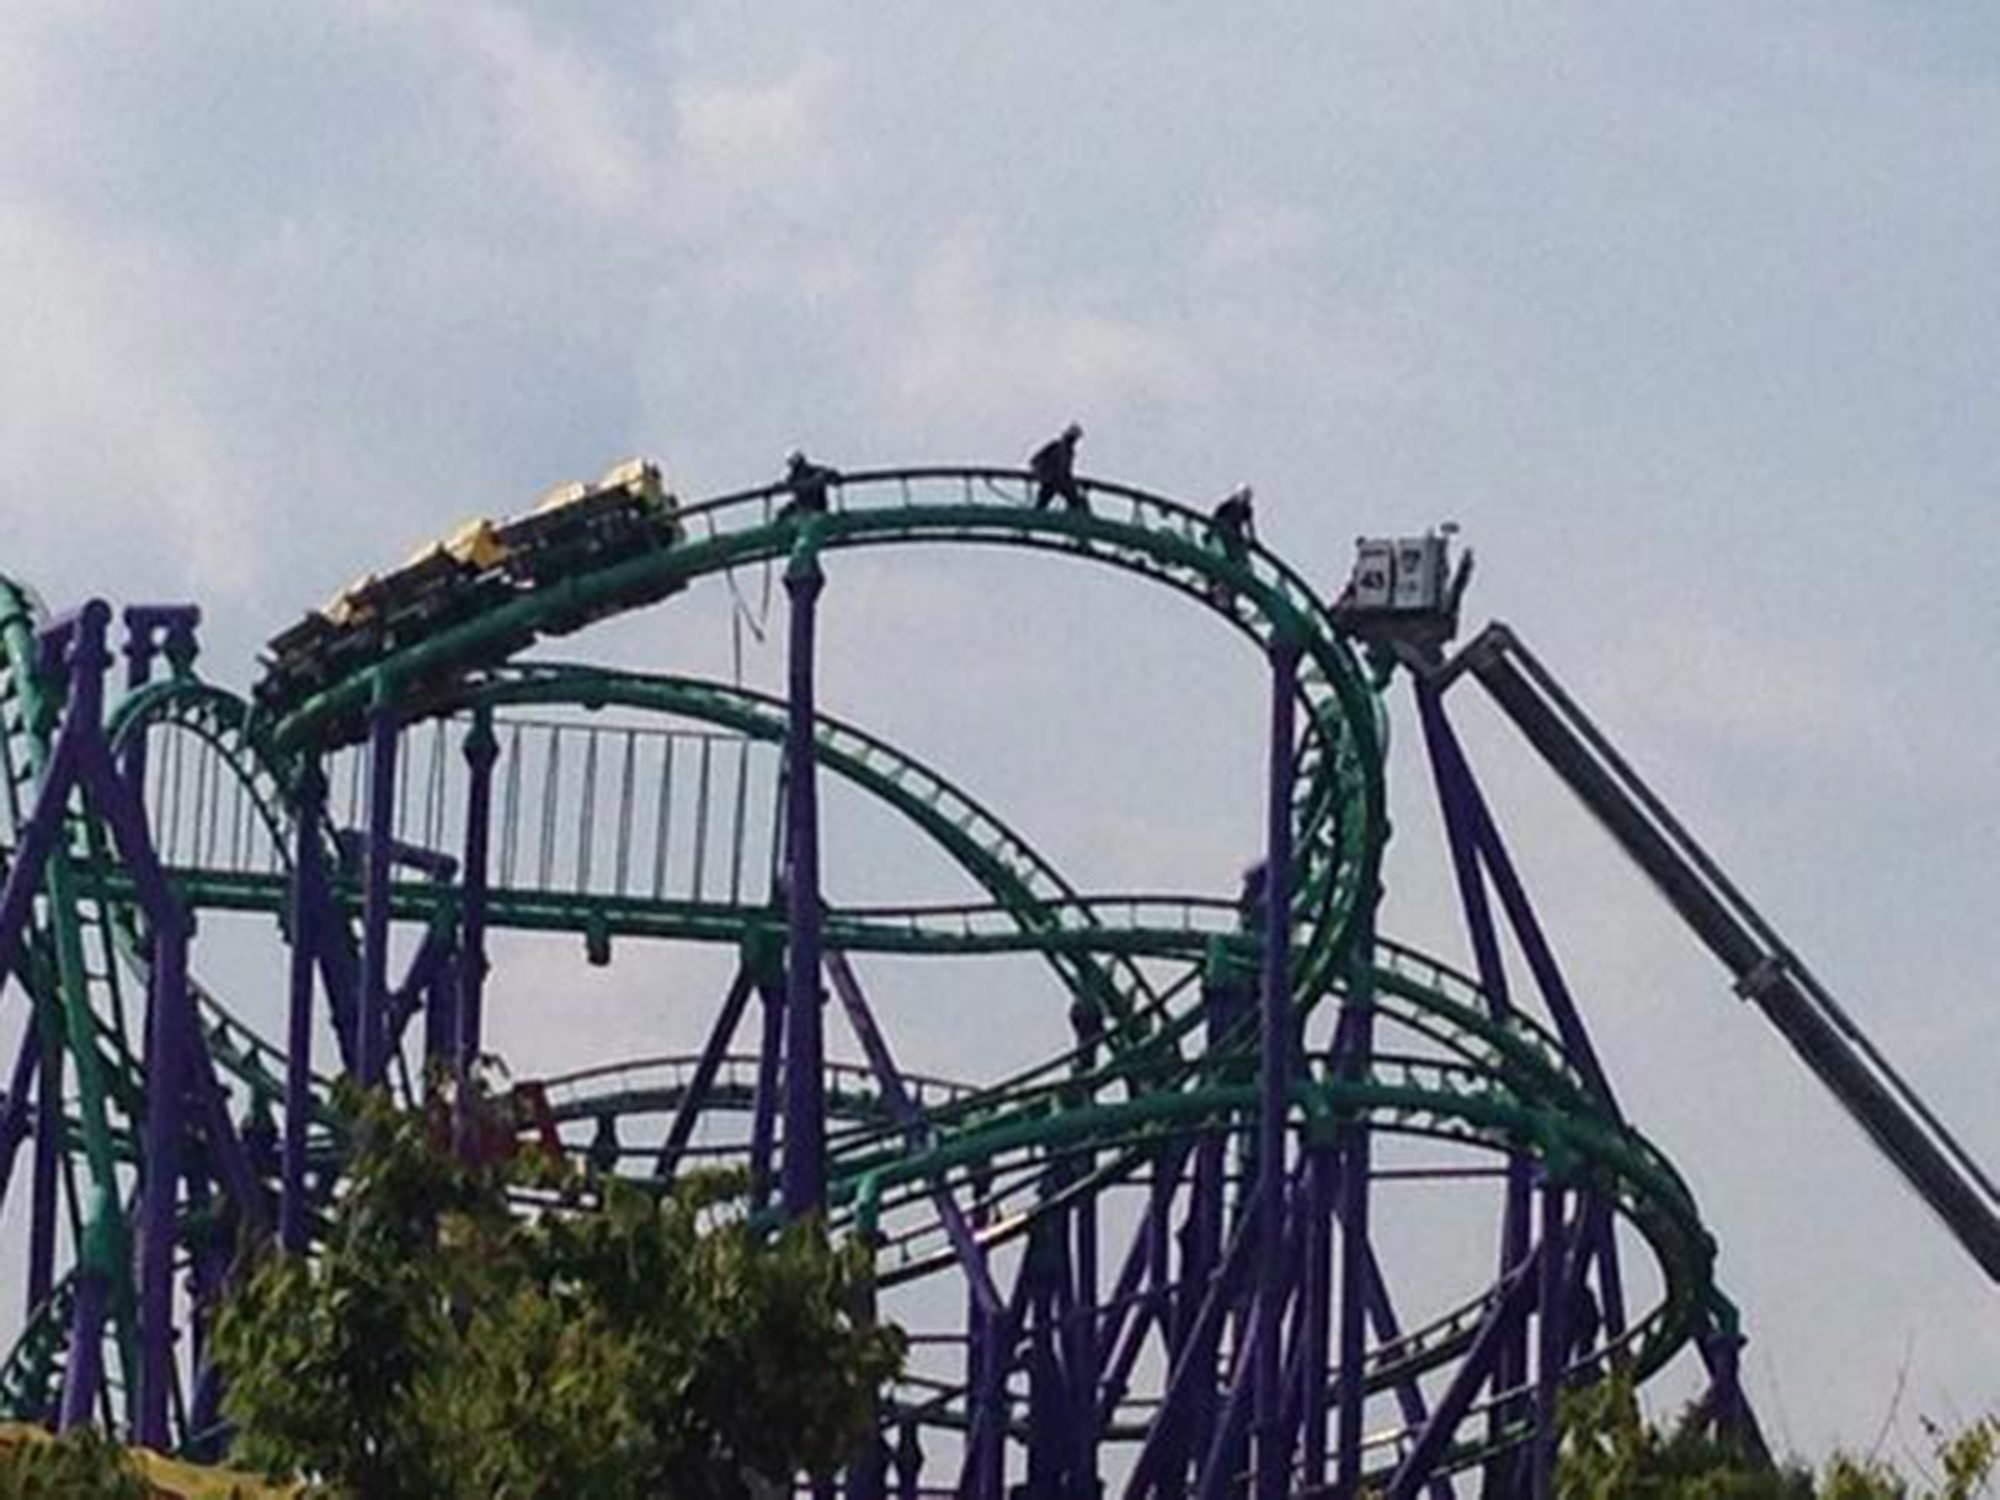 Firefighters rescuing 24 riders stuck atop the Joker's Jinx roller coaster at Six Flags   theme park in Prince George's County, Maryland on August 10, 2014.